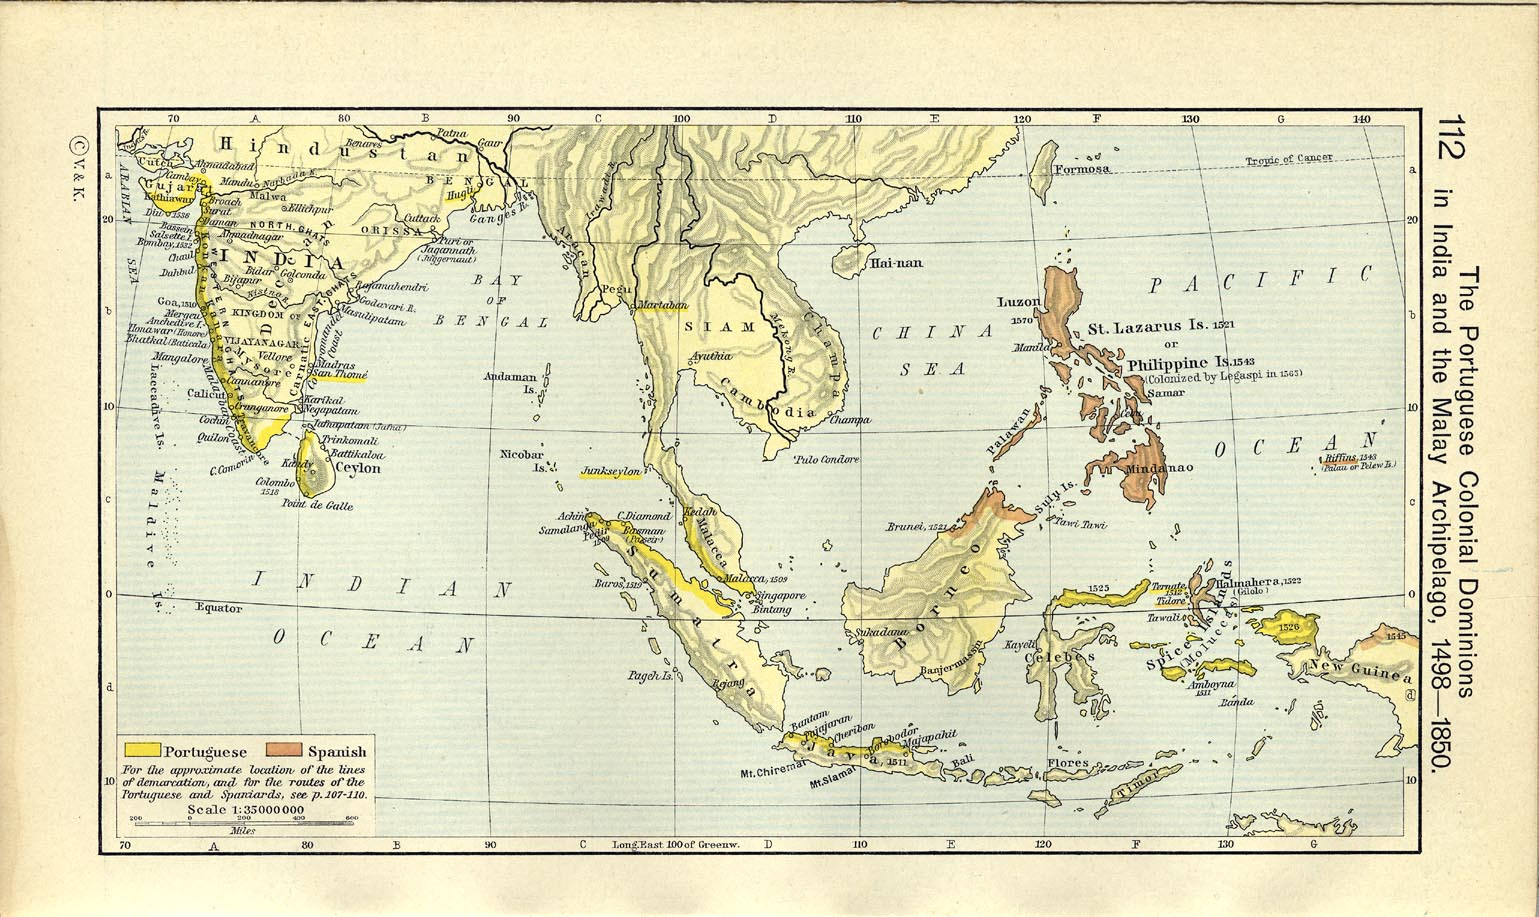 The Portuguese In The Age Of Discovery C 1340 1665 By: Map Of India And The Malay Archipelago 1498-1850